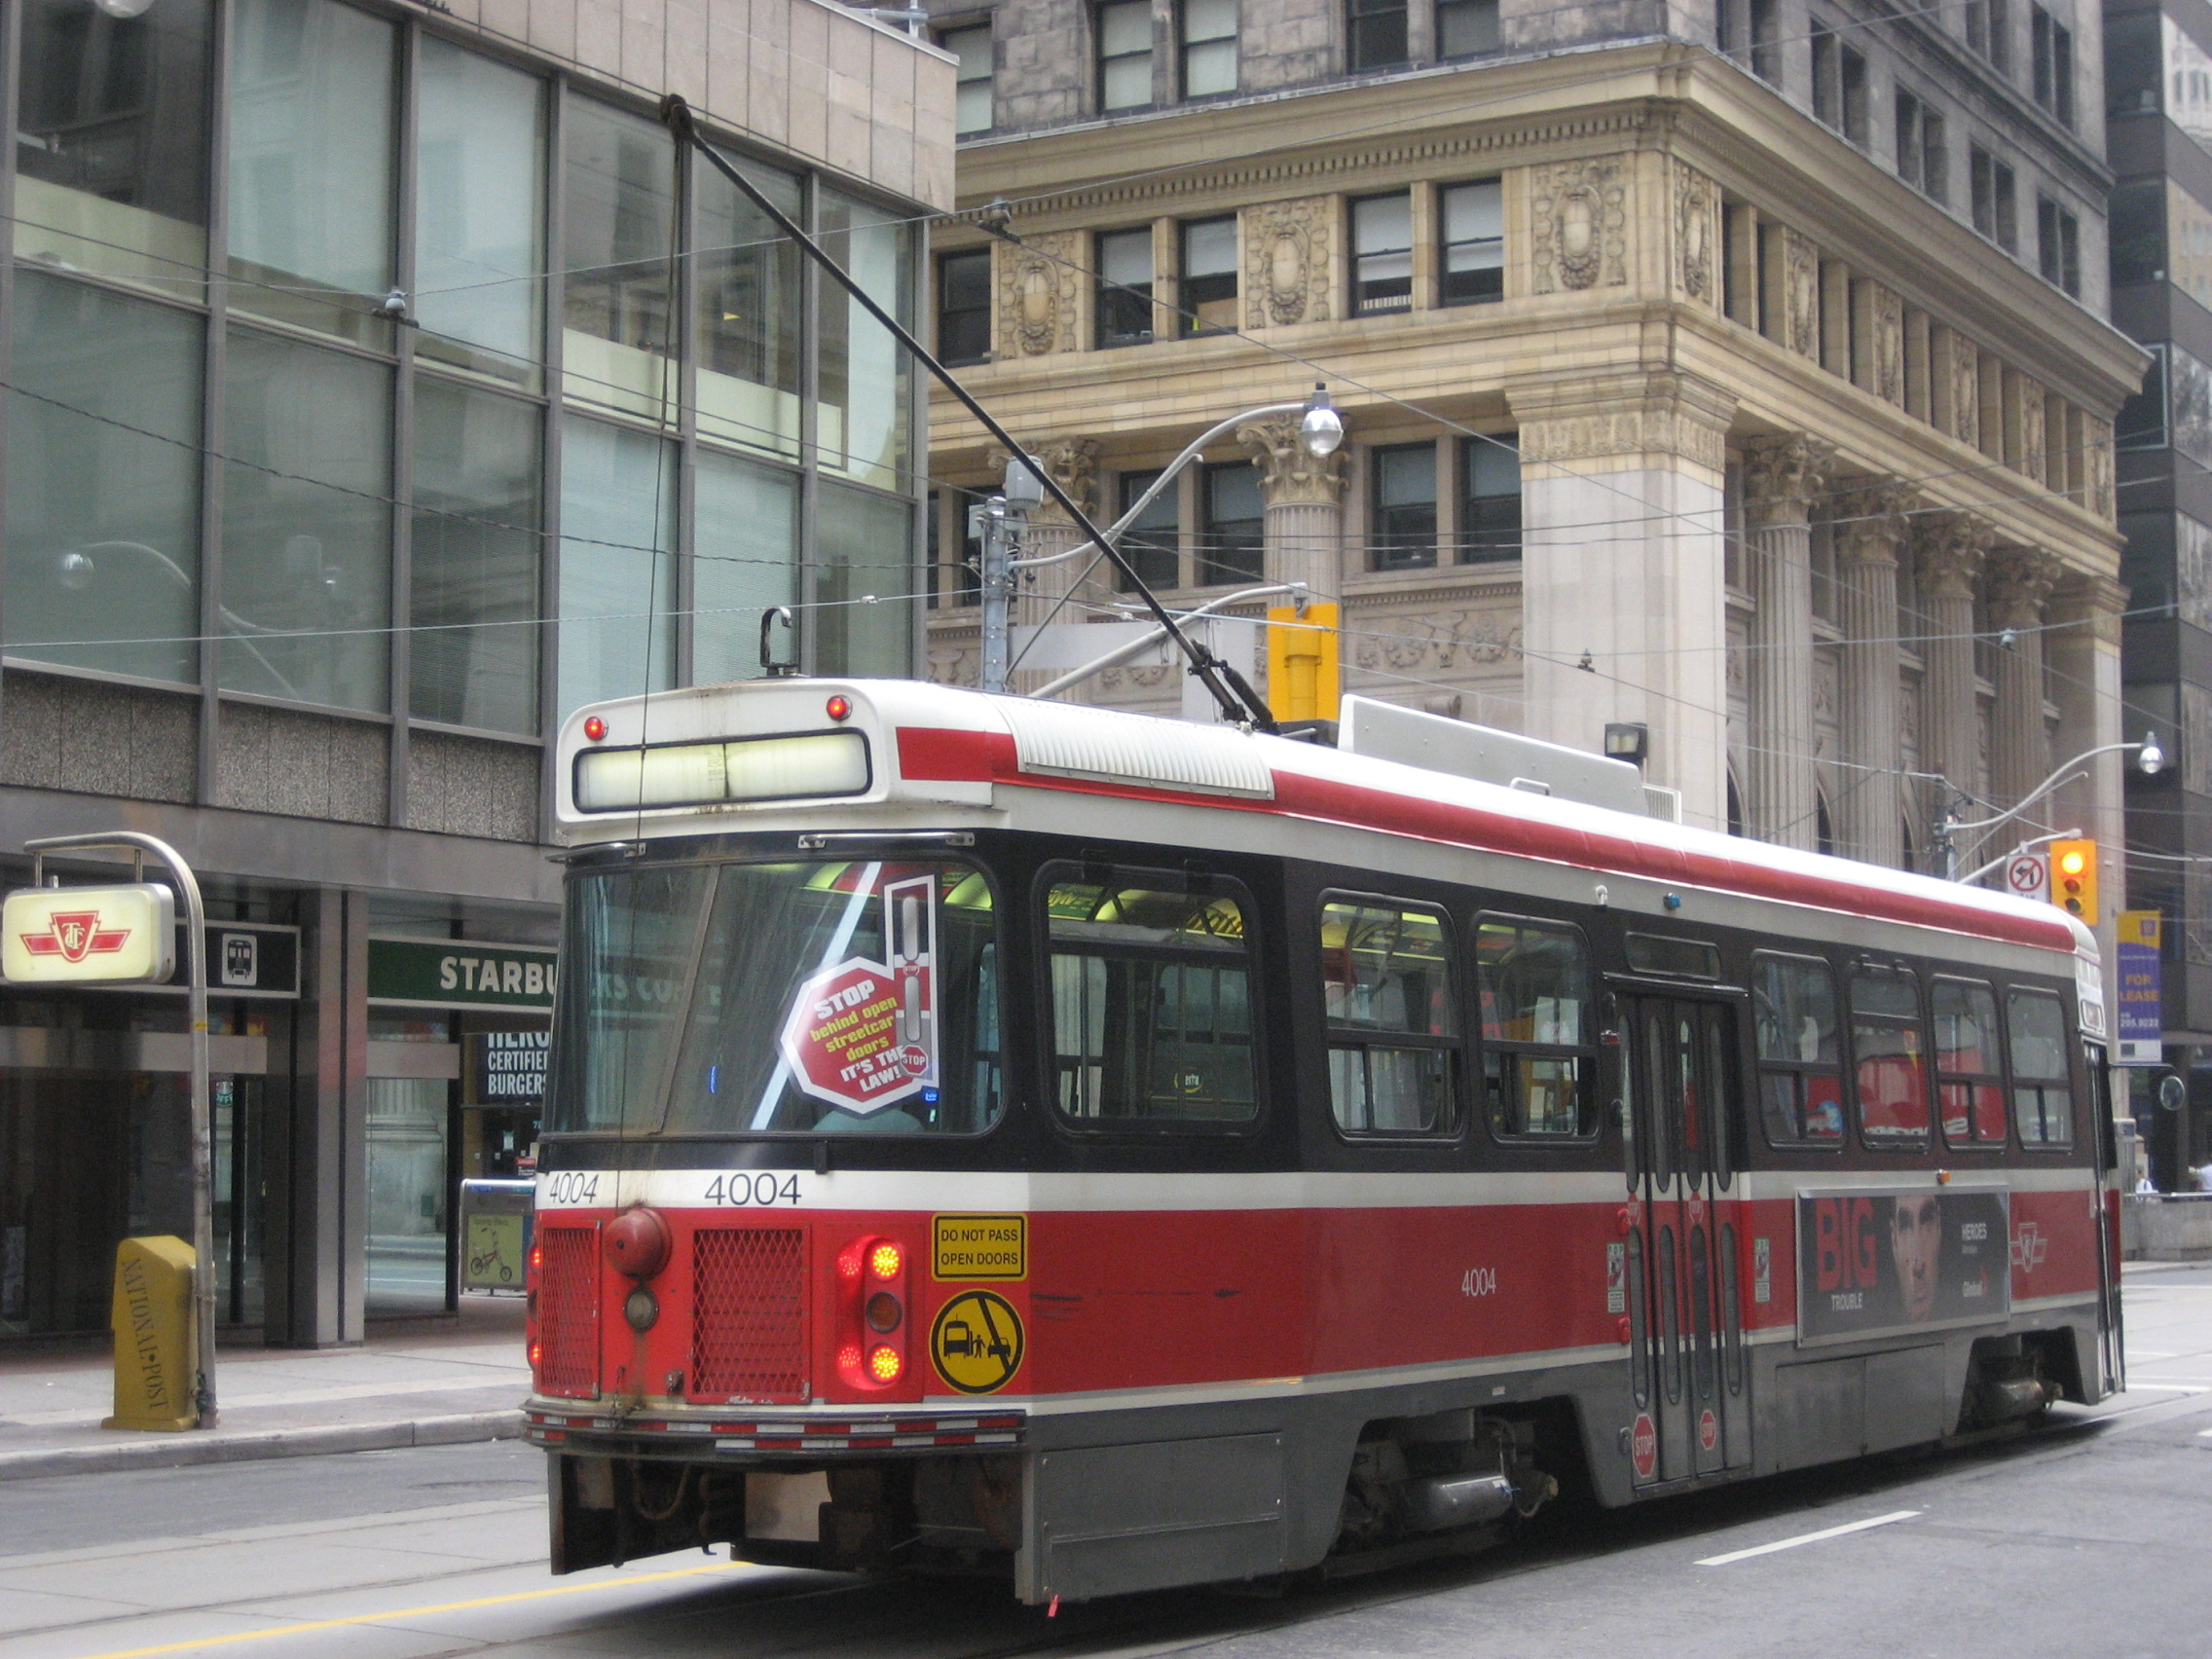 All The Names Of Cars >> File:TTC Toronto.JPG - Wikimedia Commons